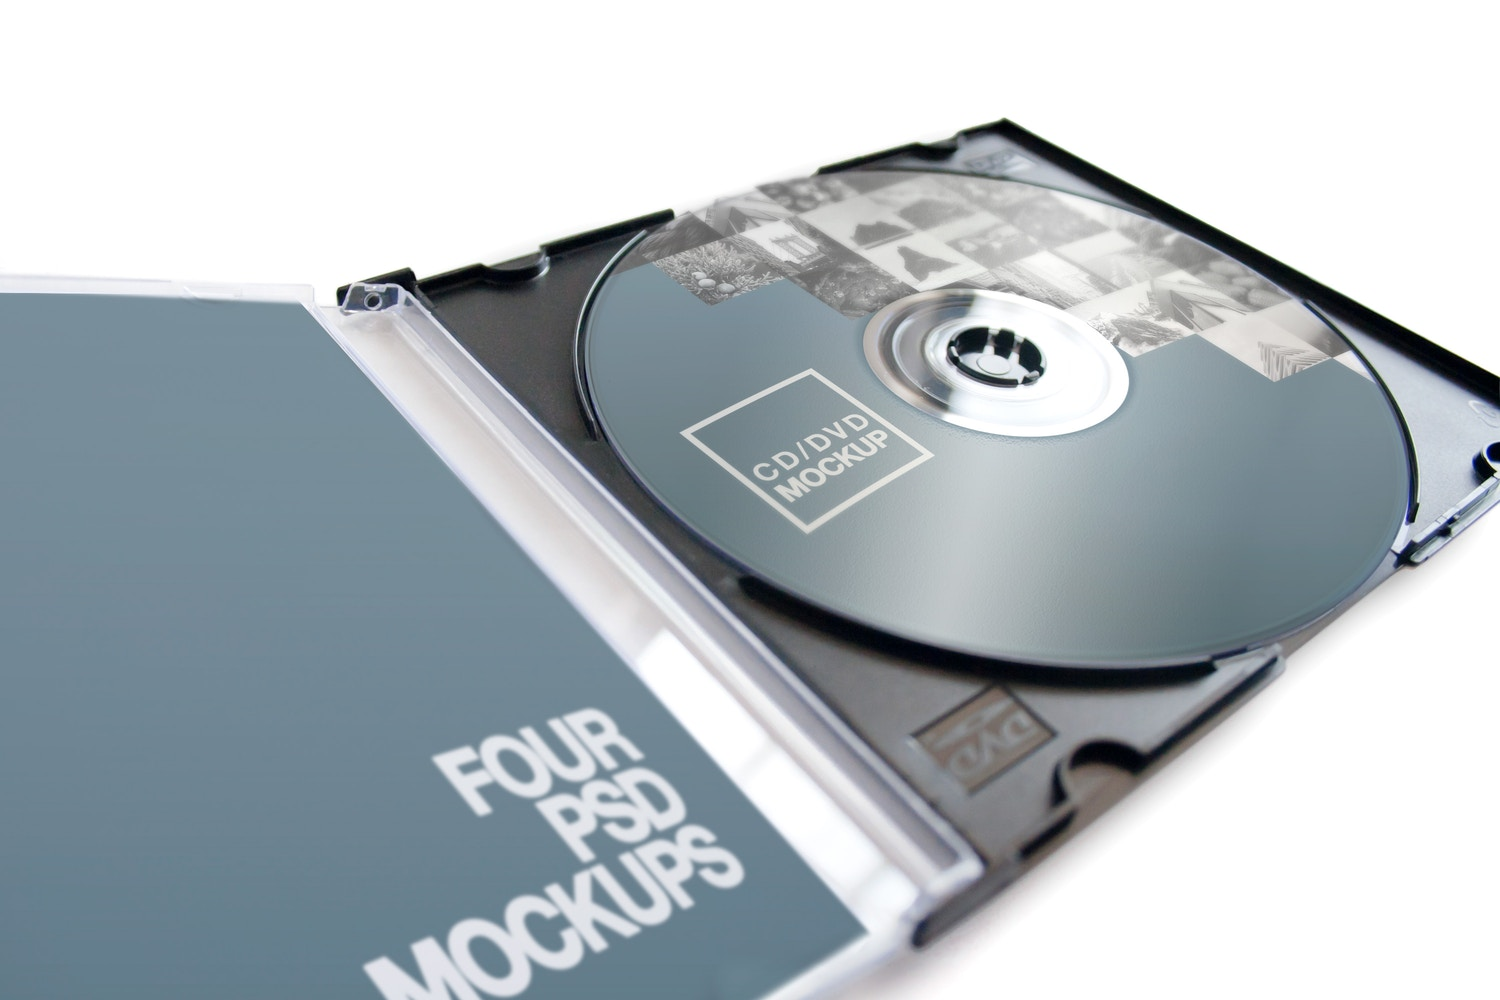 CD-DVD Jewel Case Opened Mockup 01